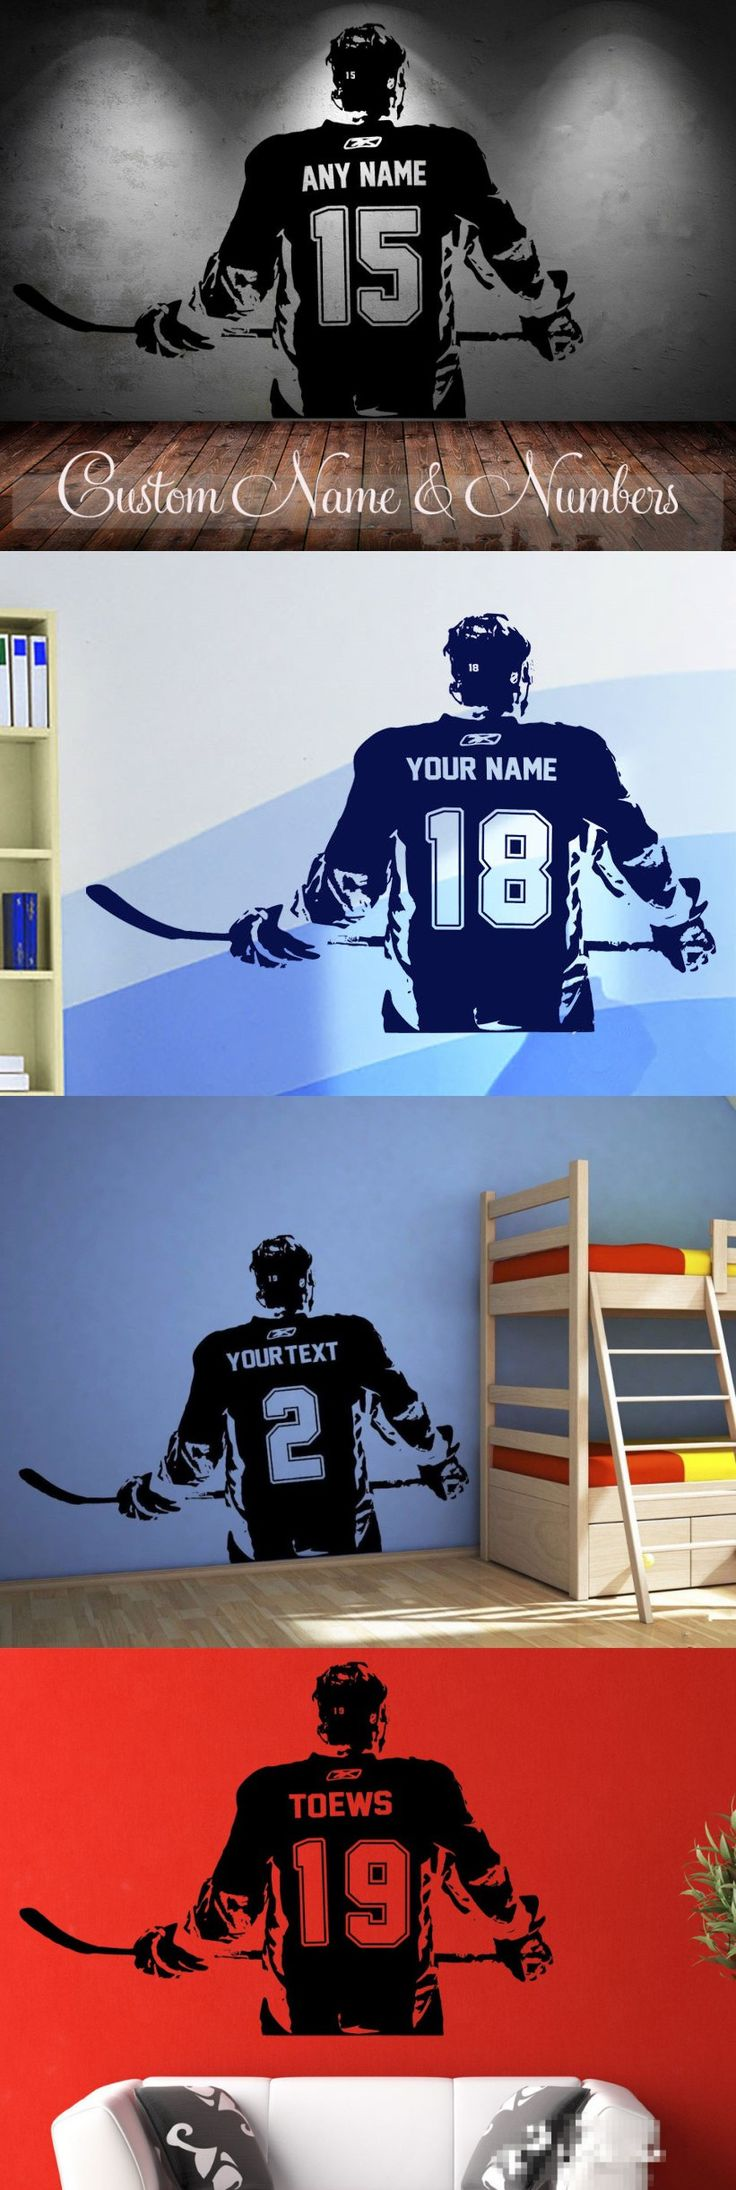 Boys hockey bedroom ideas - Hockey Player Wall Art Decal Sticker Choose Name Number Personalized Home Decor Wall Stickers For Kids Room Vinilos Paredes D645